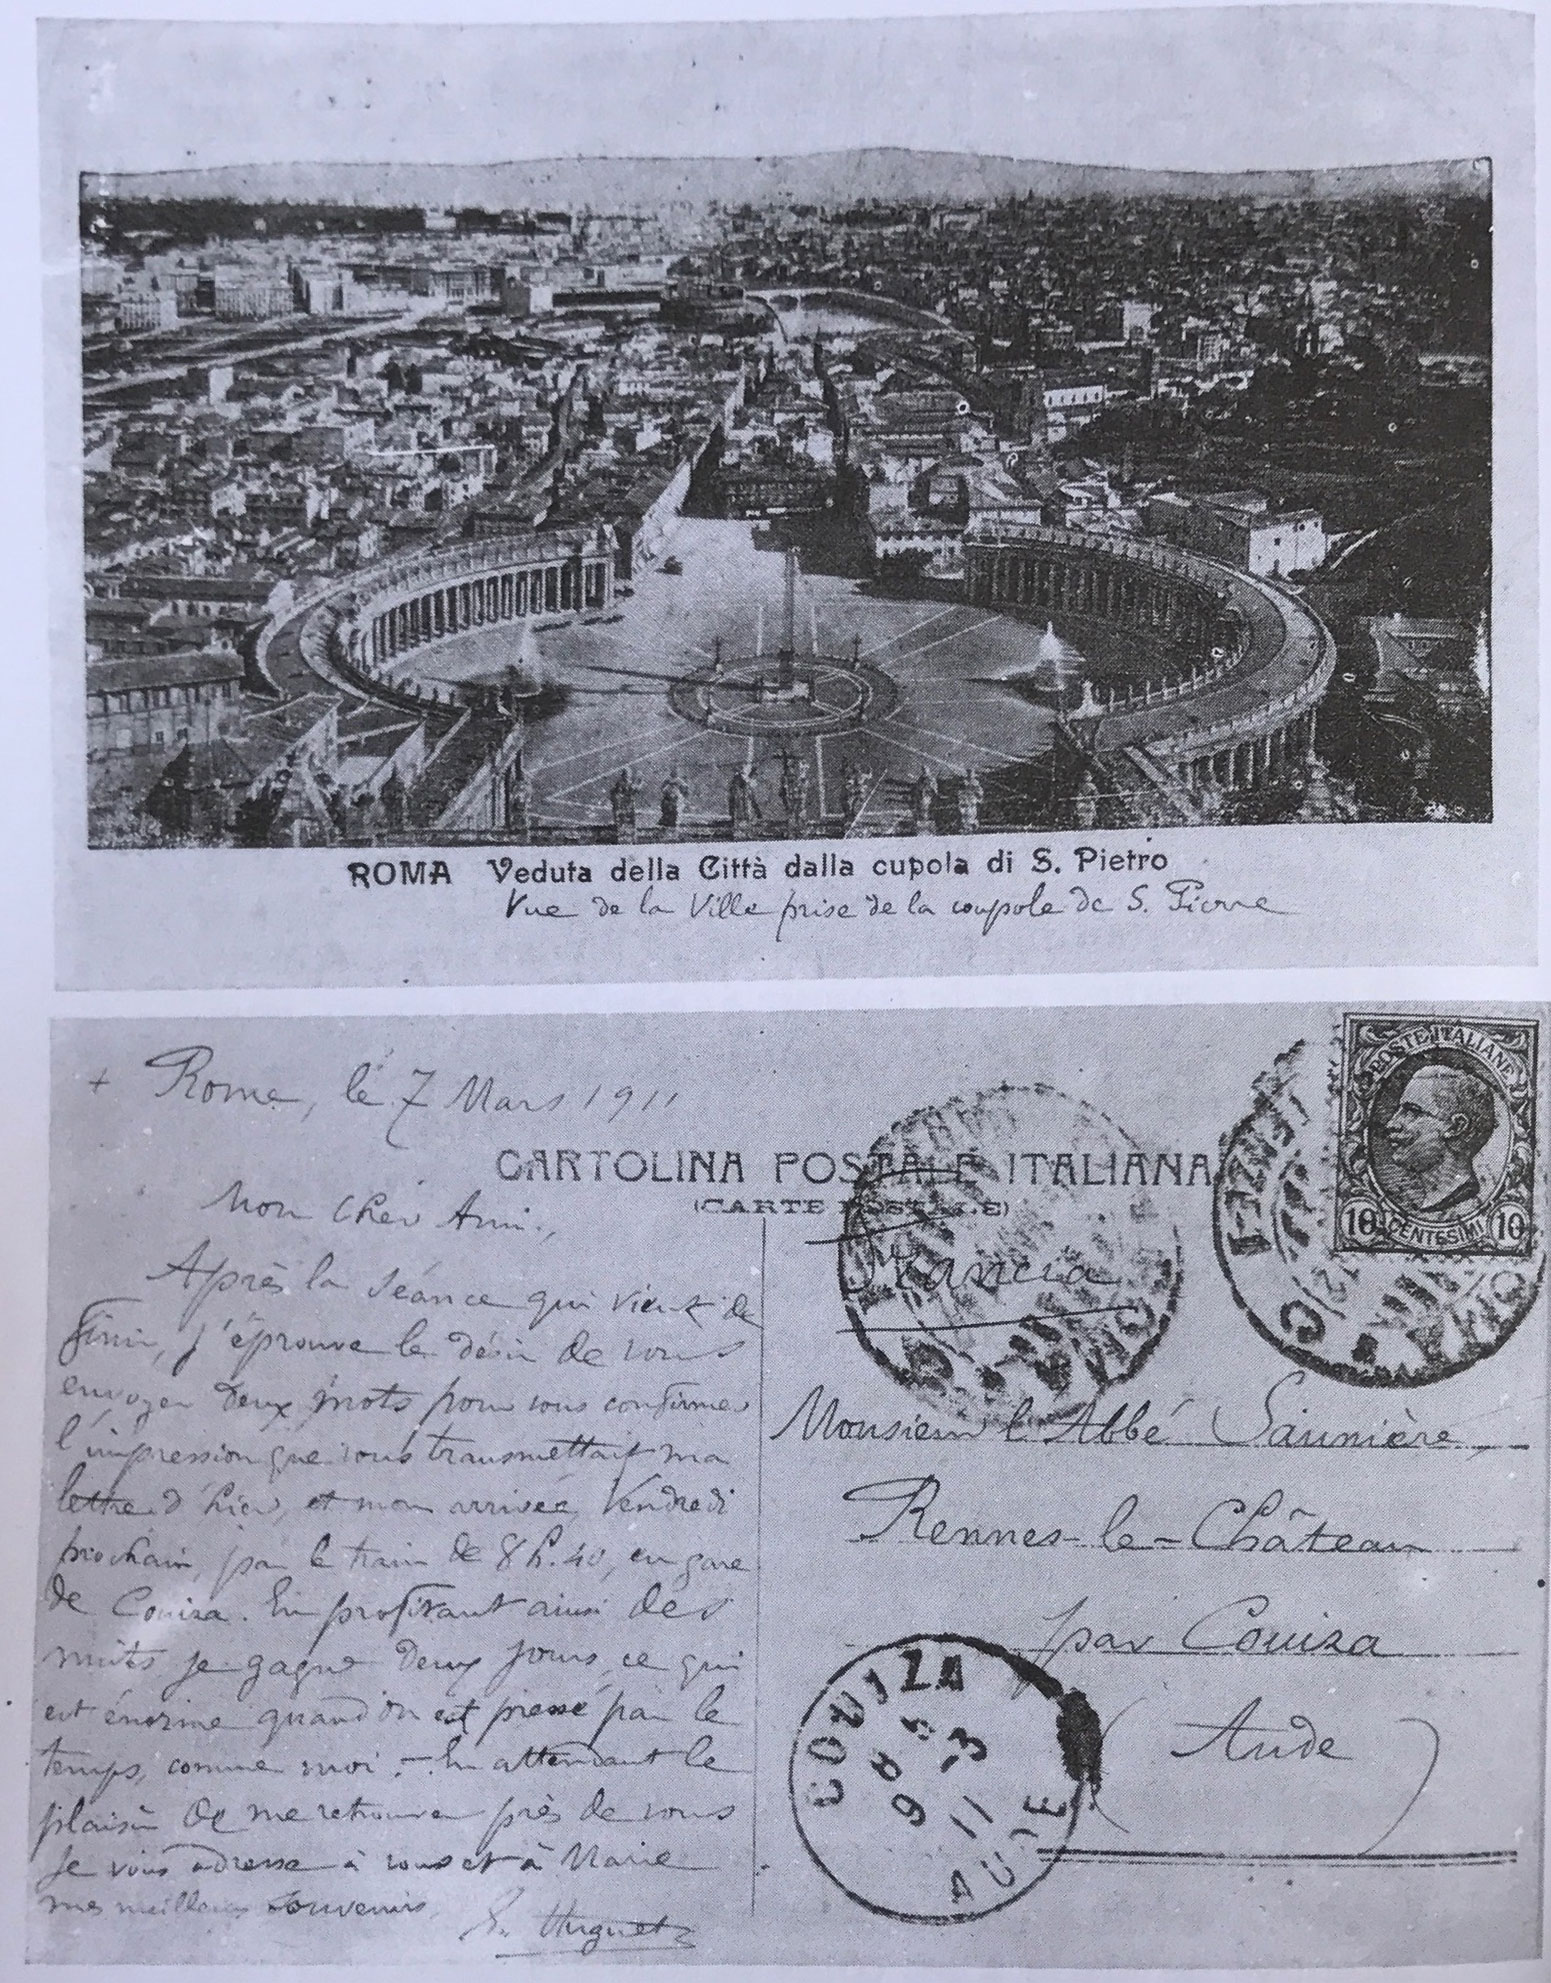 Postcard from Eugene Huguet to Saunière sent during a visit to the Vatican to defend him